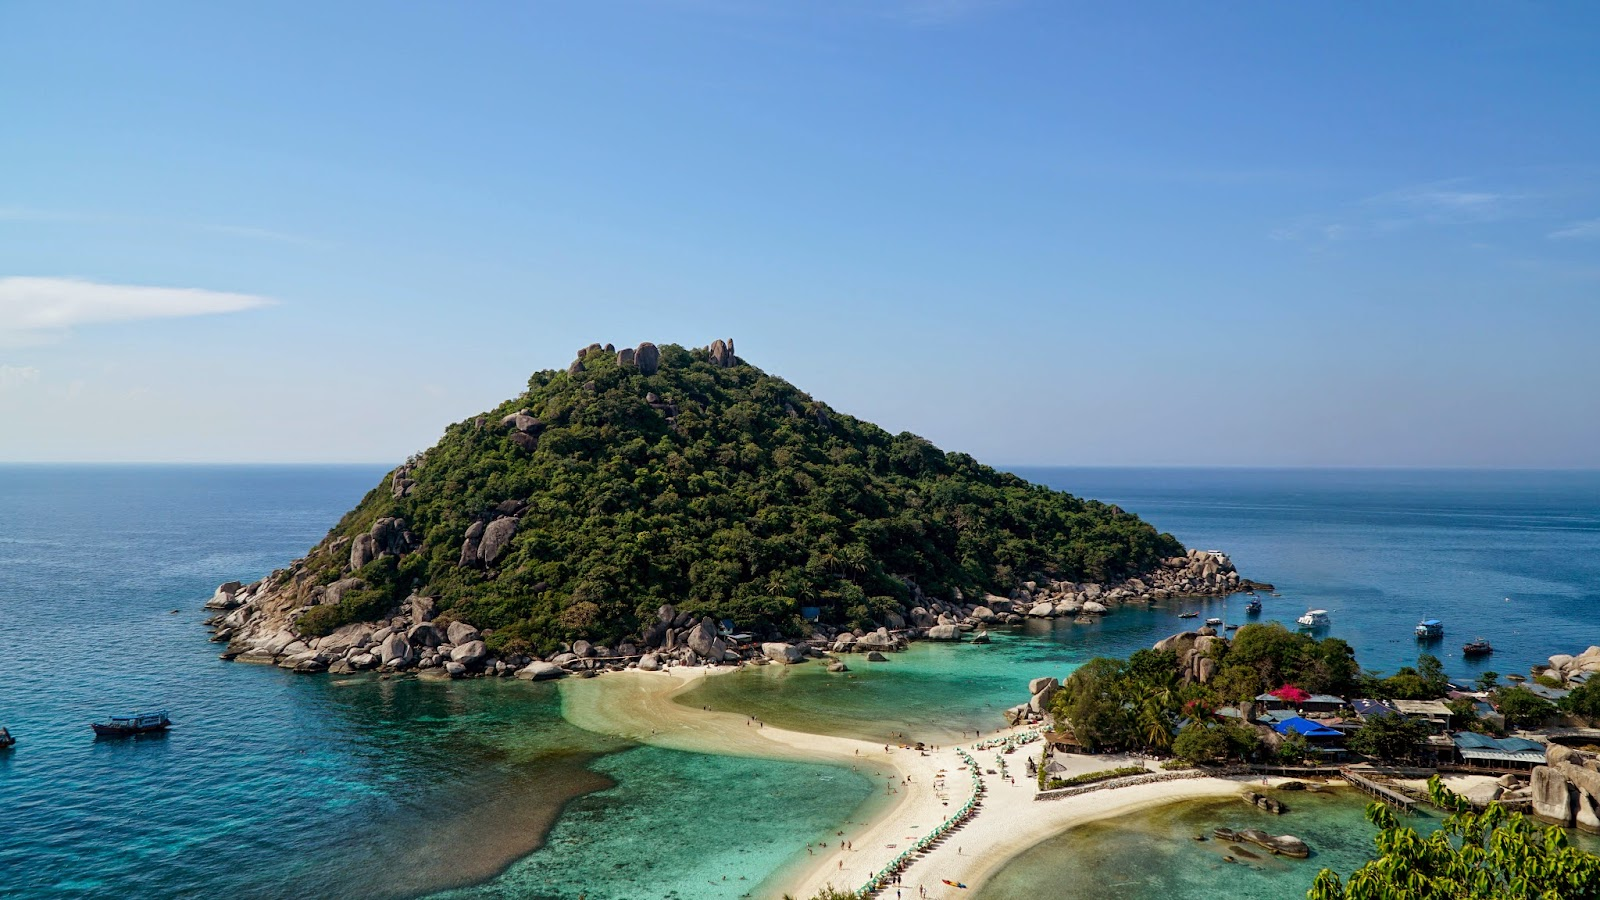 The world famous view from Koh Nang Yuan viewpoint